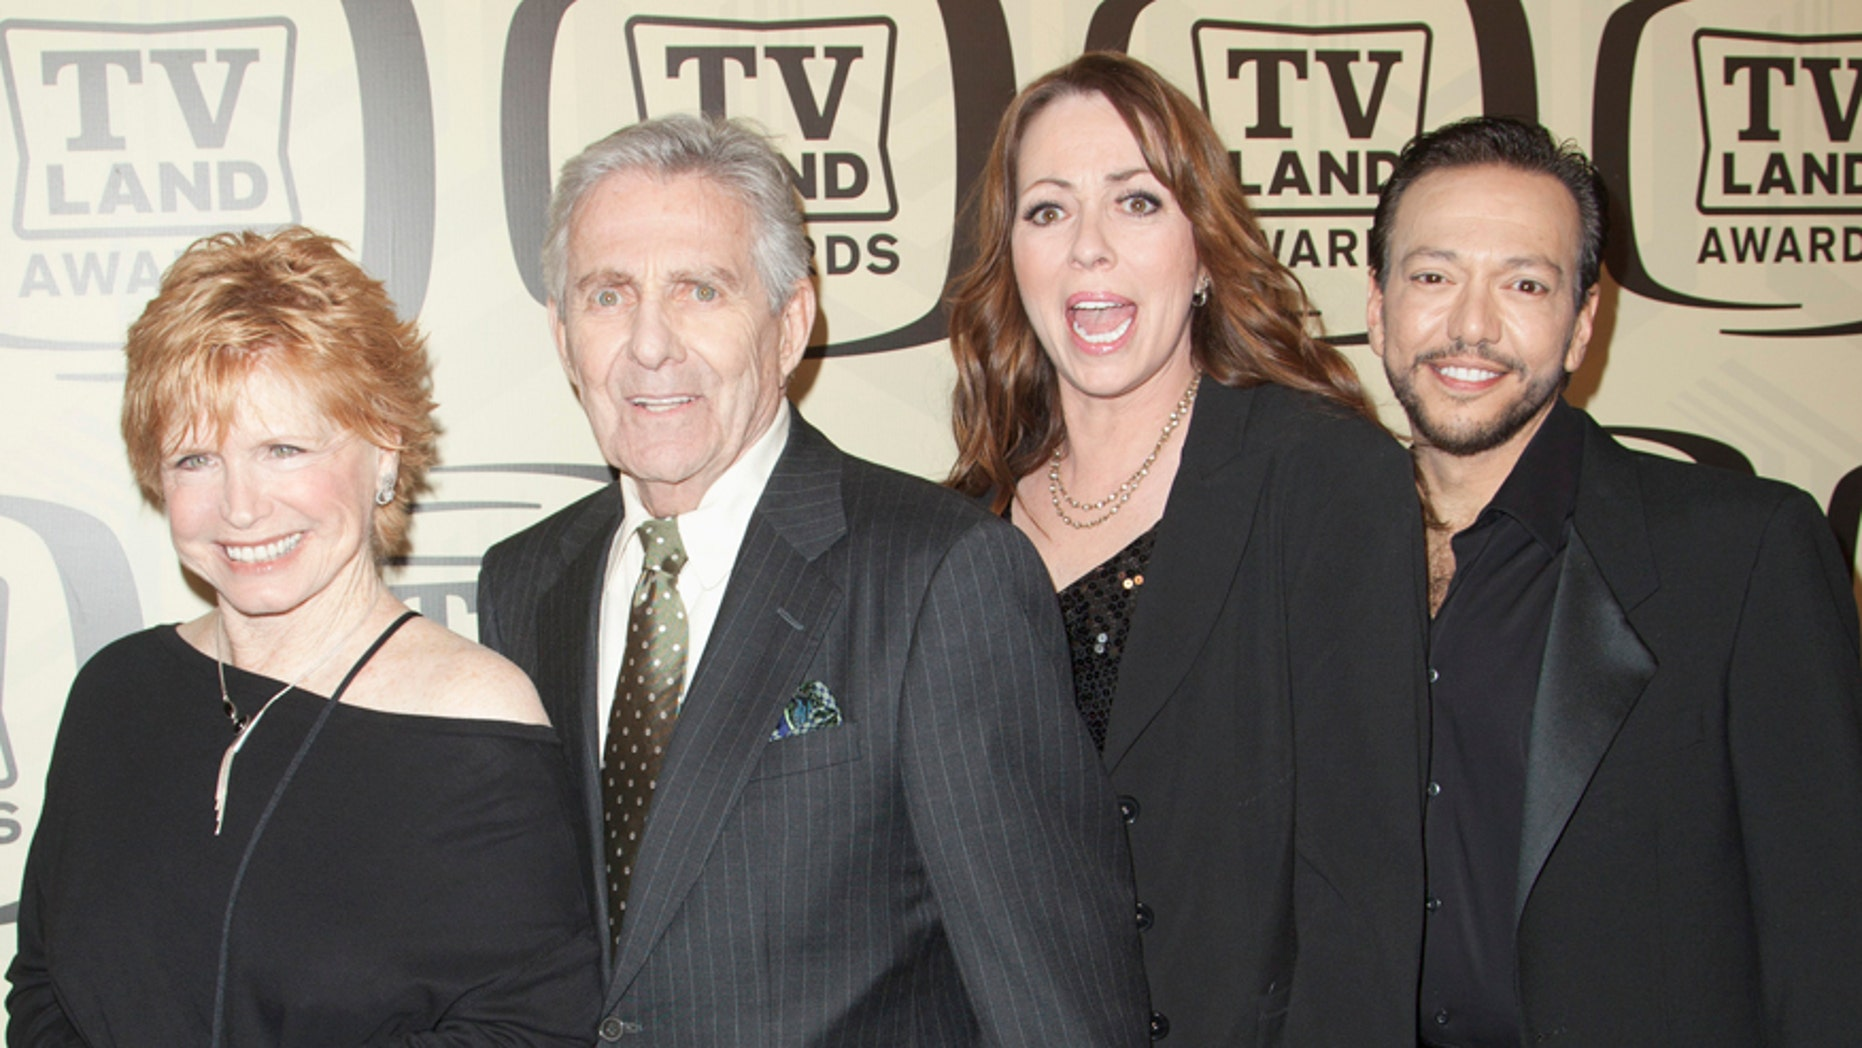 Actors Bonnie Franklin (L to R), Pat Harrington Jr, Mackenzie Phillips and Glenn Scarpelli arrive for the 10th Annual TV Land Awards at the Lexington Avenue Armory in New York April 14, 2012.